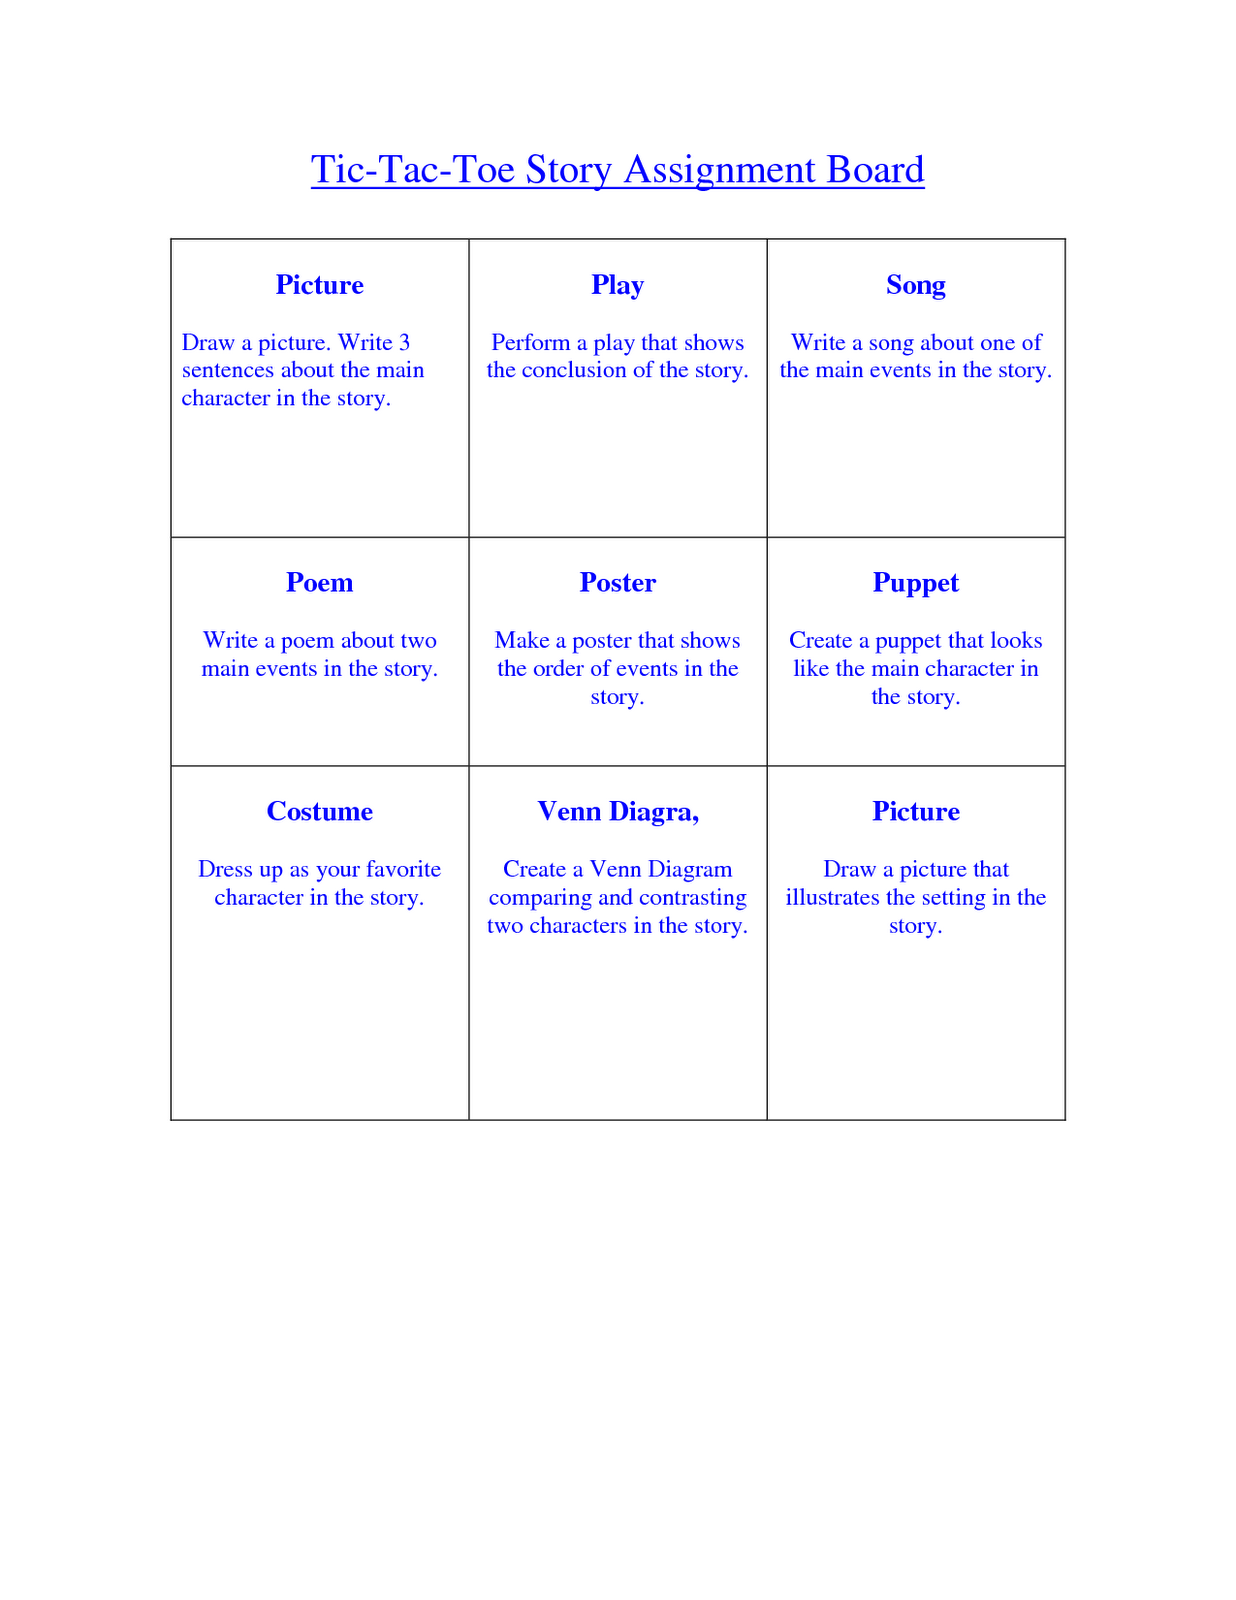 tic tac toe homework template - math techniques and strategies november 2011